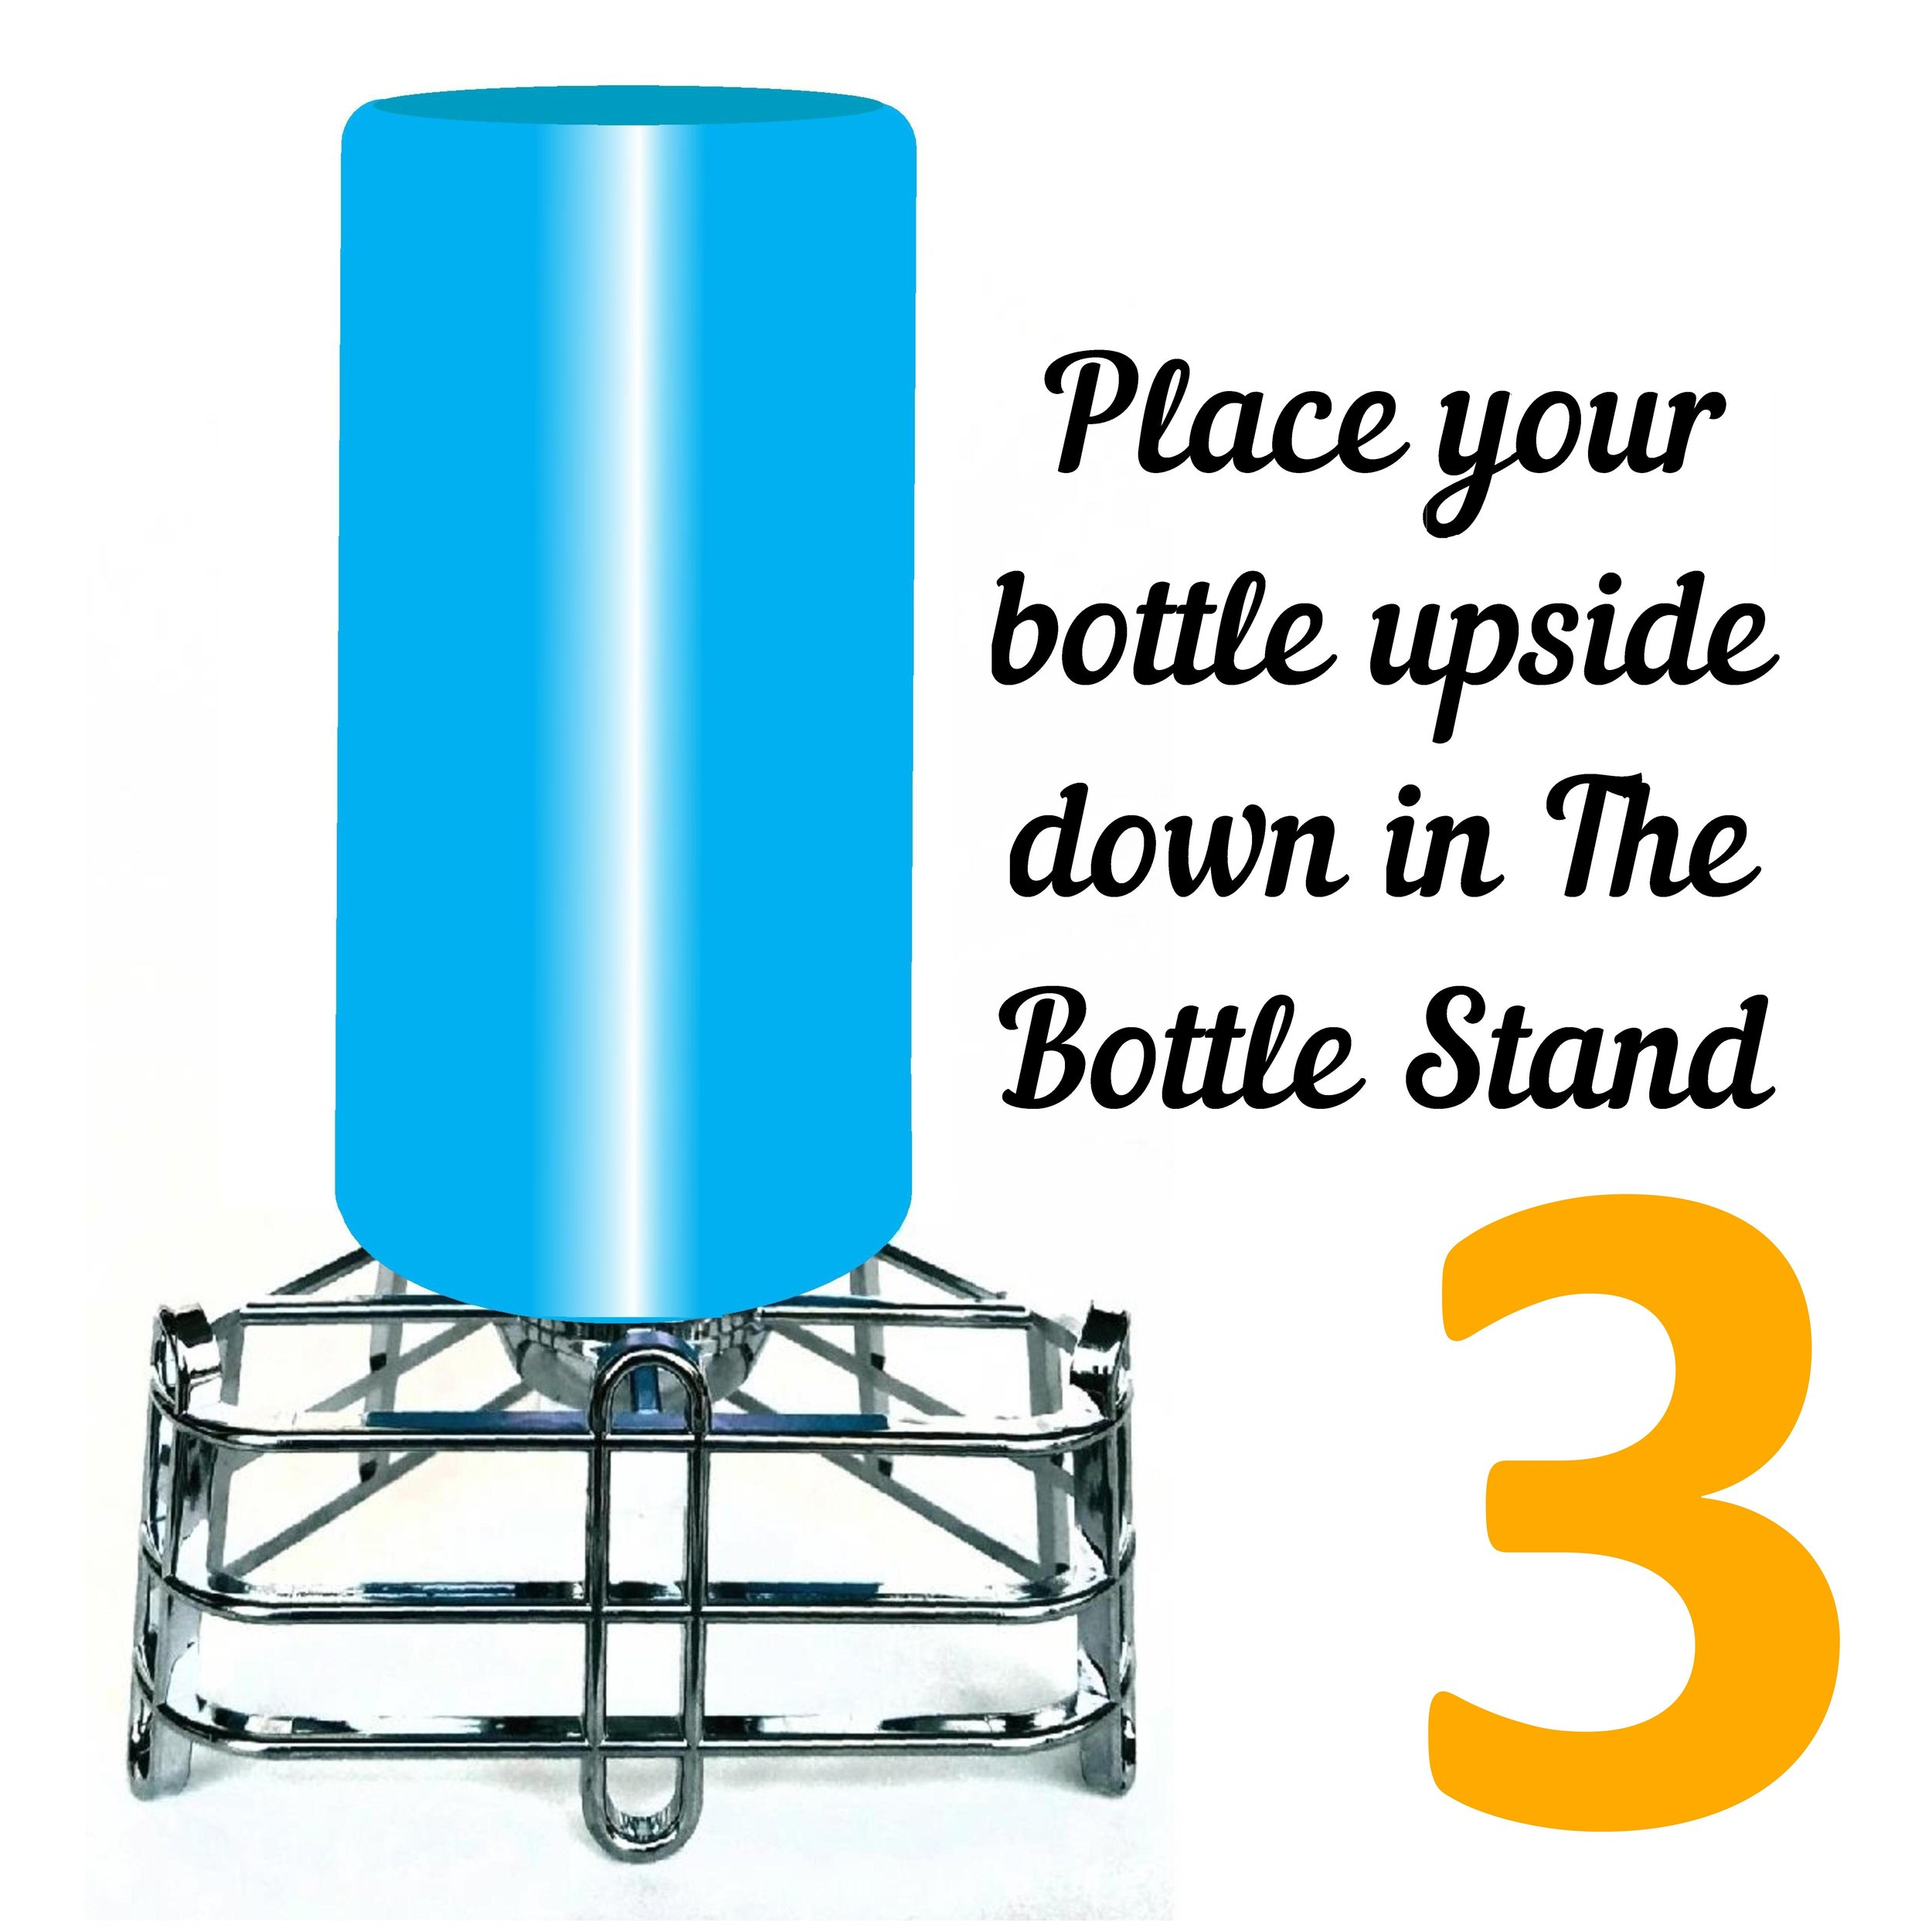 The Bottle Stand 3 (1-2-3).jpg